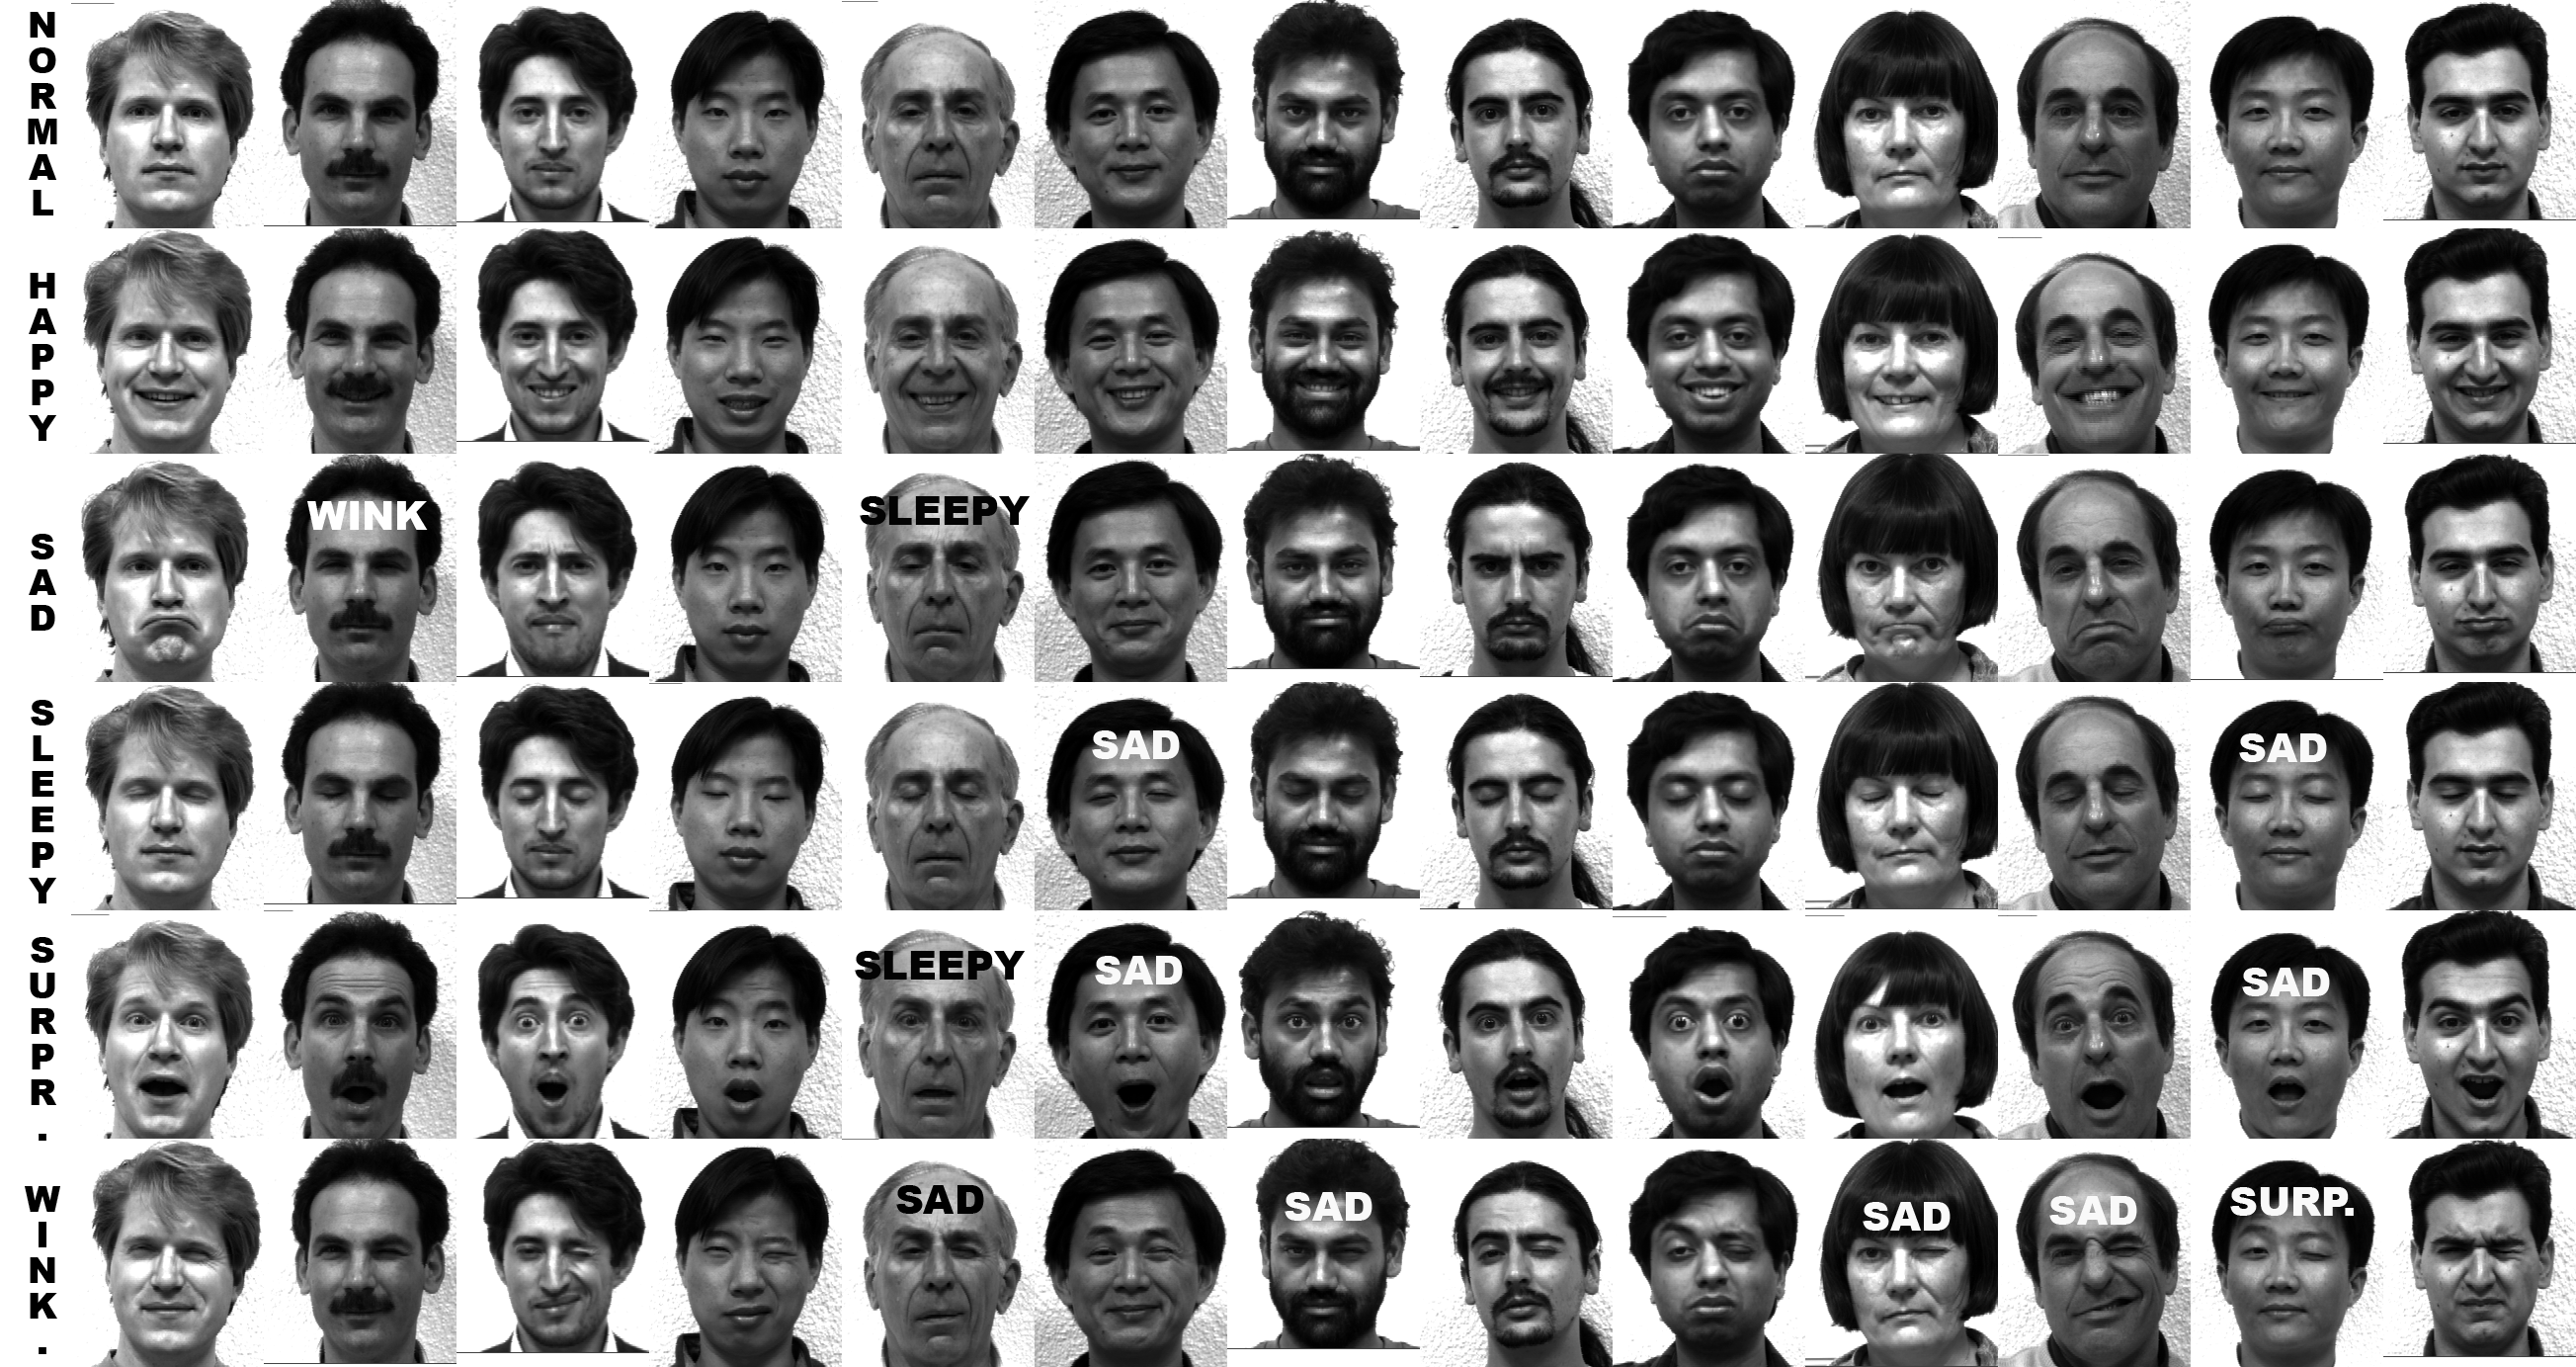 Recognition Of Facial Expressions 84